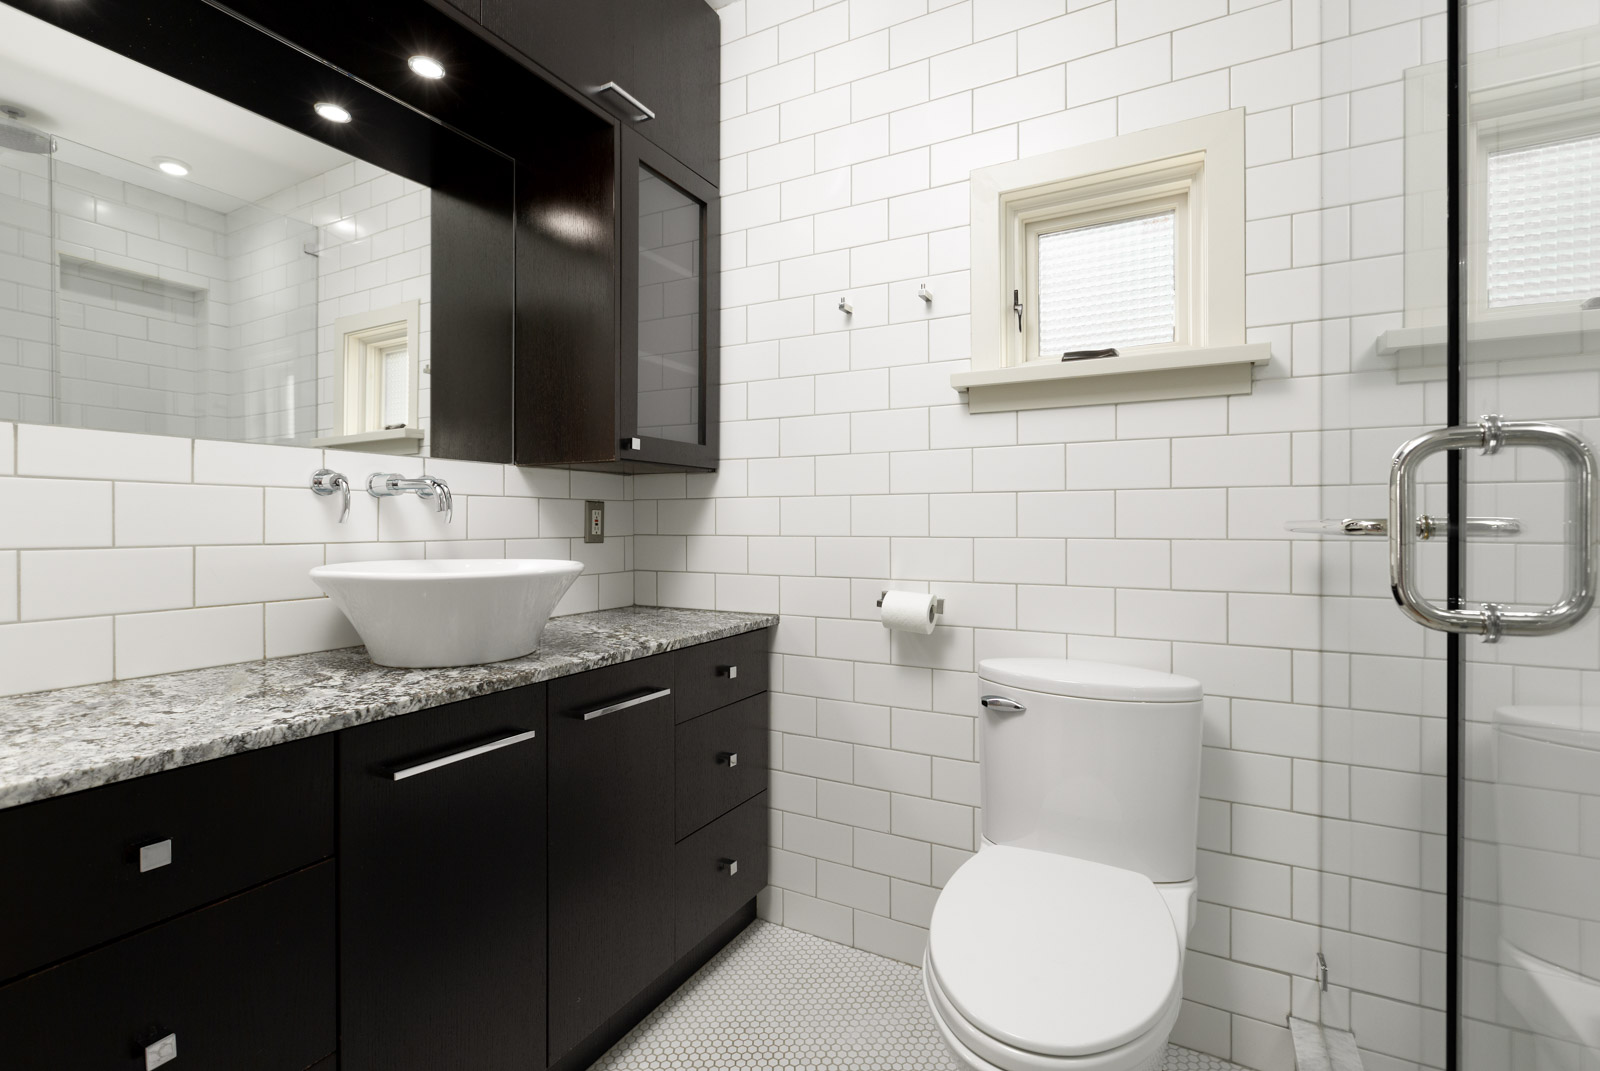 bathroom with textured wall and plenty of storage space